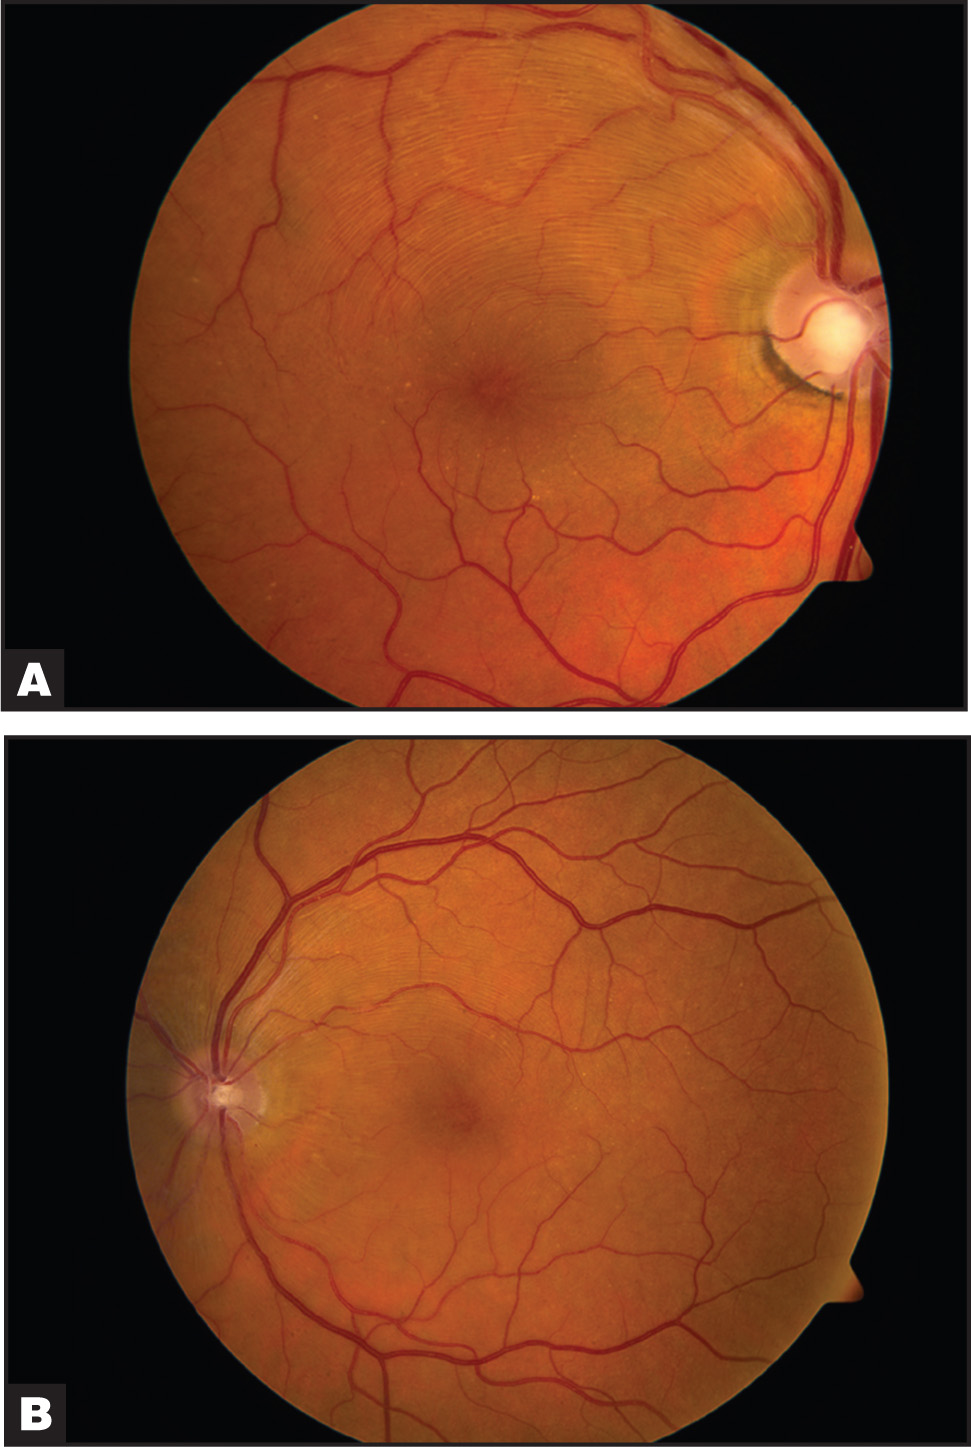 Color Photographs of the (A) Right and (B) Left Eye Showing Macular Edema and Prominent Nerve Fiber Layer.